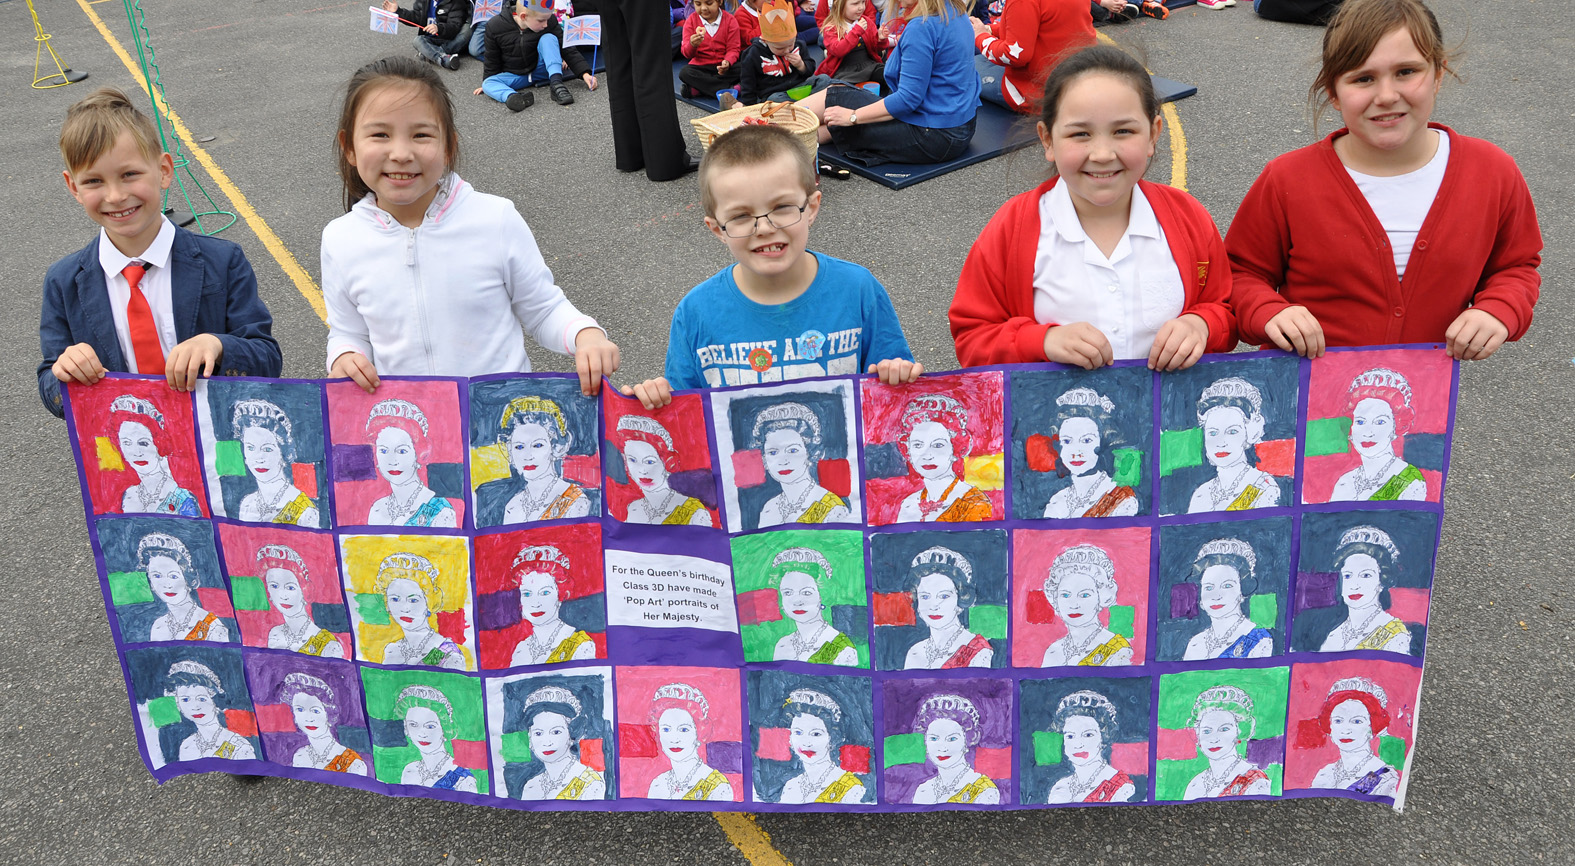 The children from Elm Academy celebrated the Queen's 90th birthday with a street party and a day of royal-themed activities.  Lewis Cavanagh-Collins (centre) who shares his birthday with the Queen. His class made this pop art tribute.